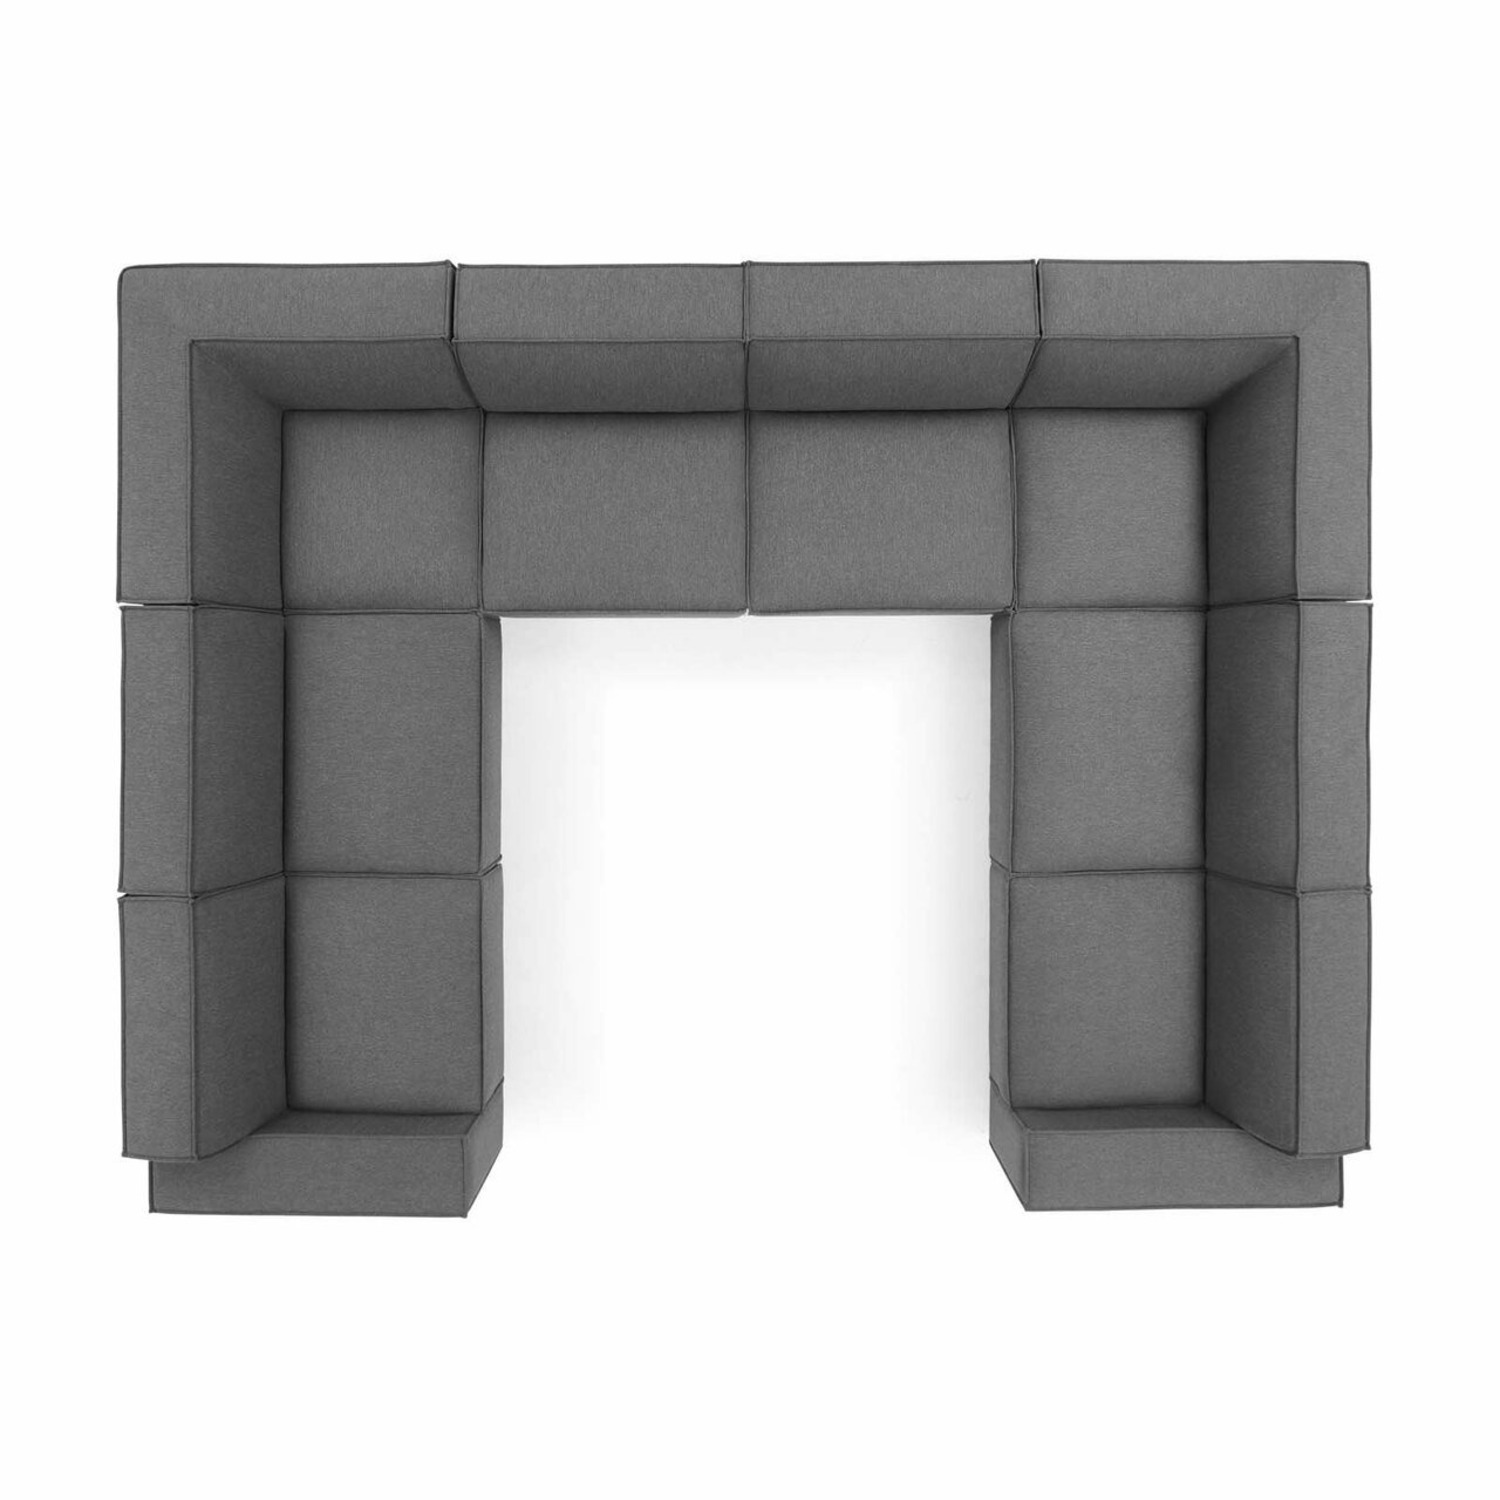 8-Piece Sectional Sofa In Charcoal Fabric Finish - image-0